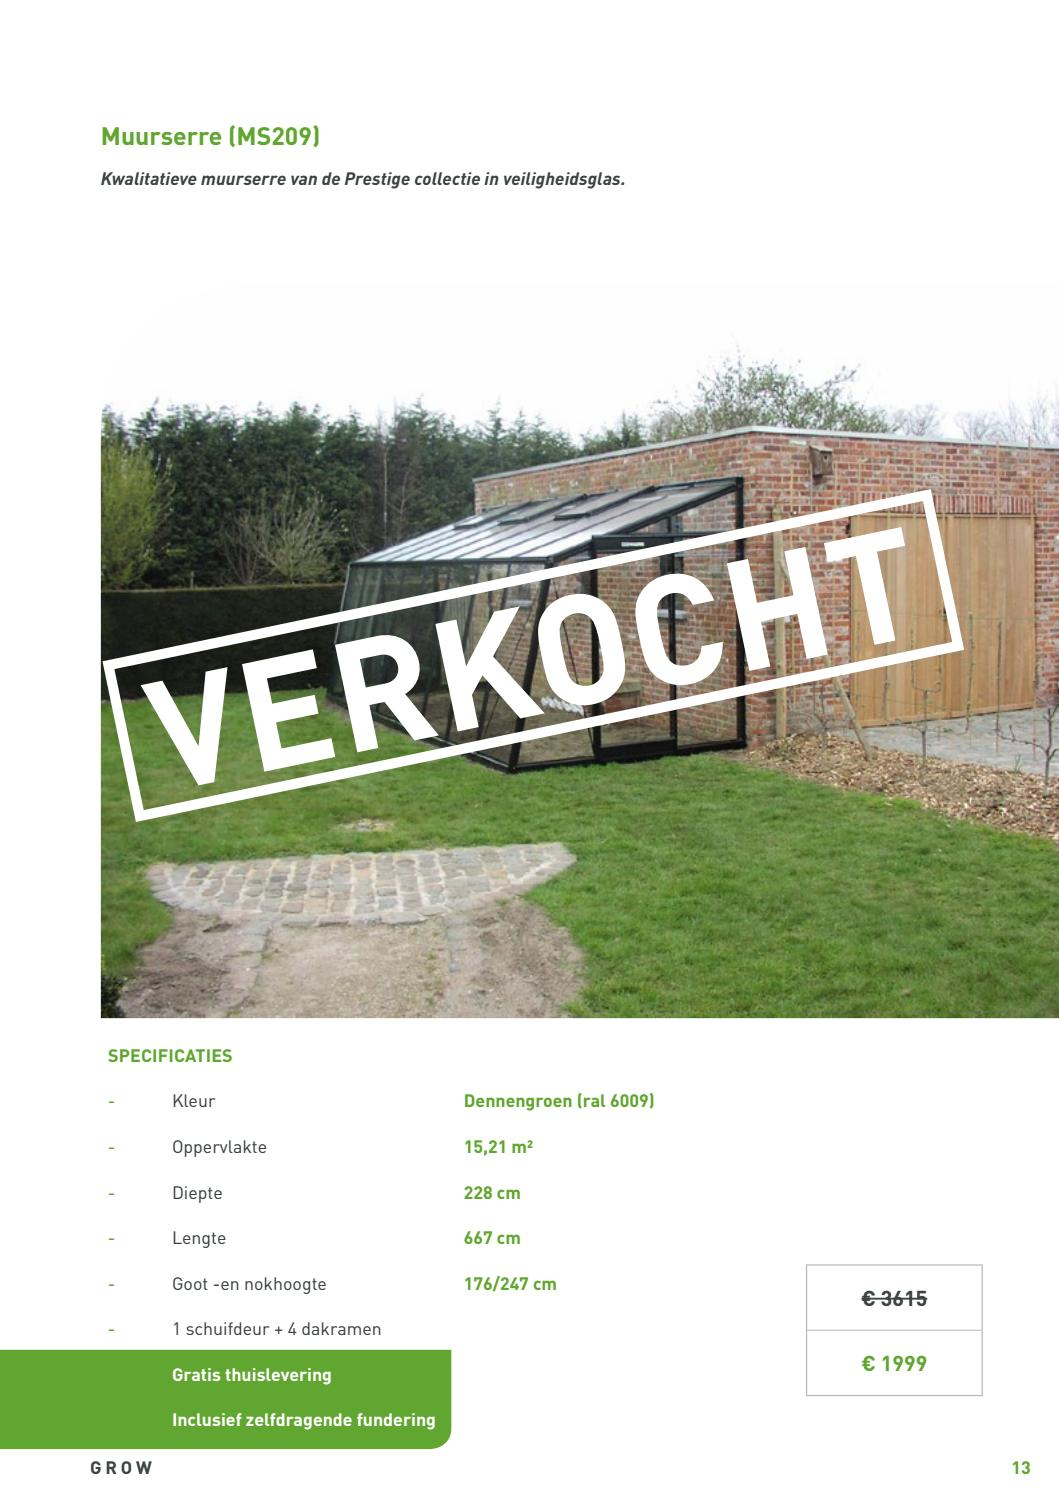 Ral 6009 Dennengroen 170515 Outlet By Acdnv Issuu